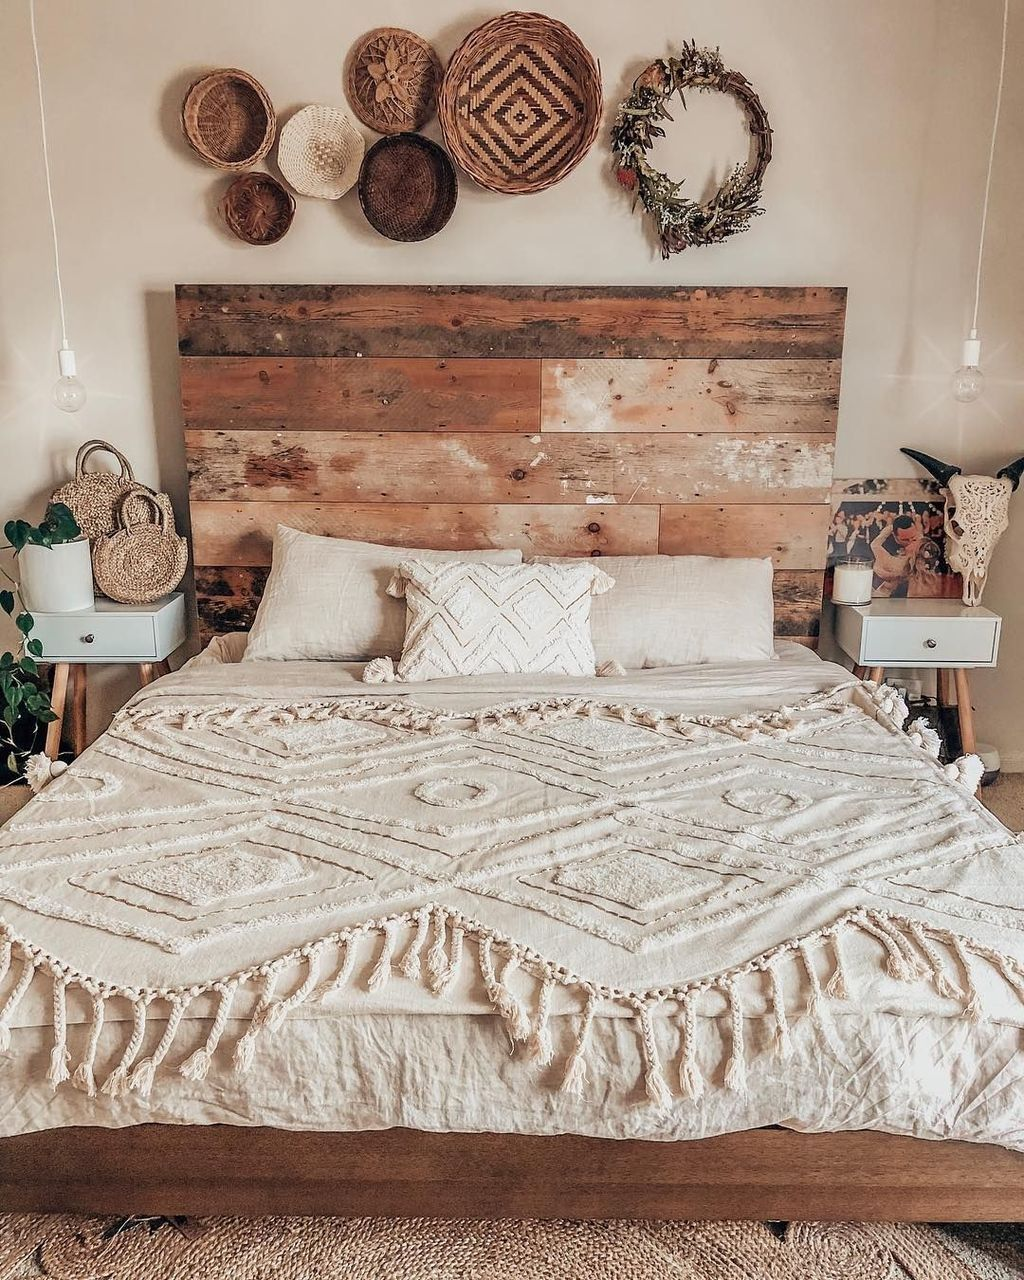 40+ Unique Boho Bedroom Decorating Ideas To Upgrade Your House #bohobedroom